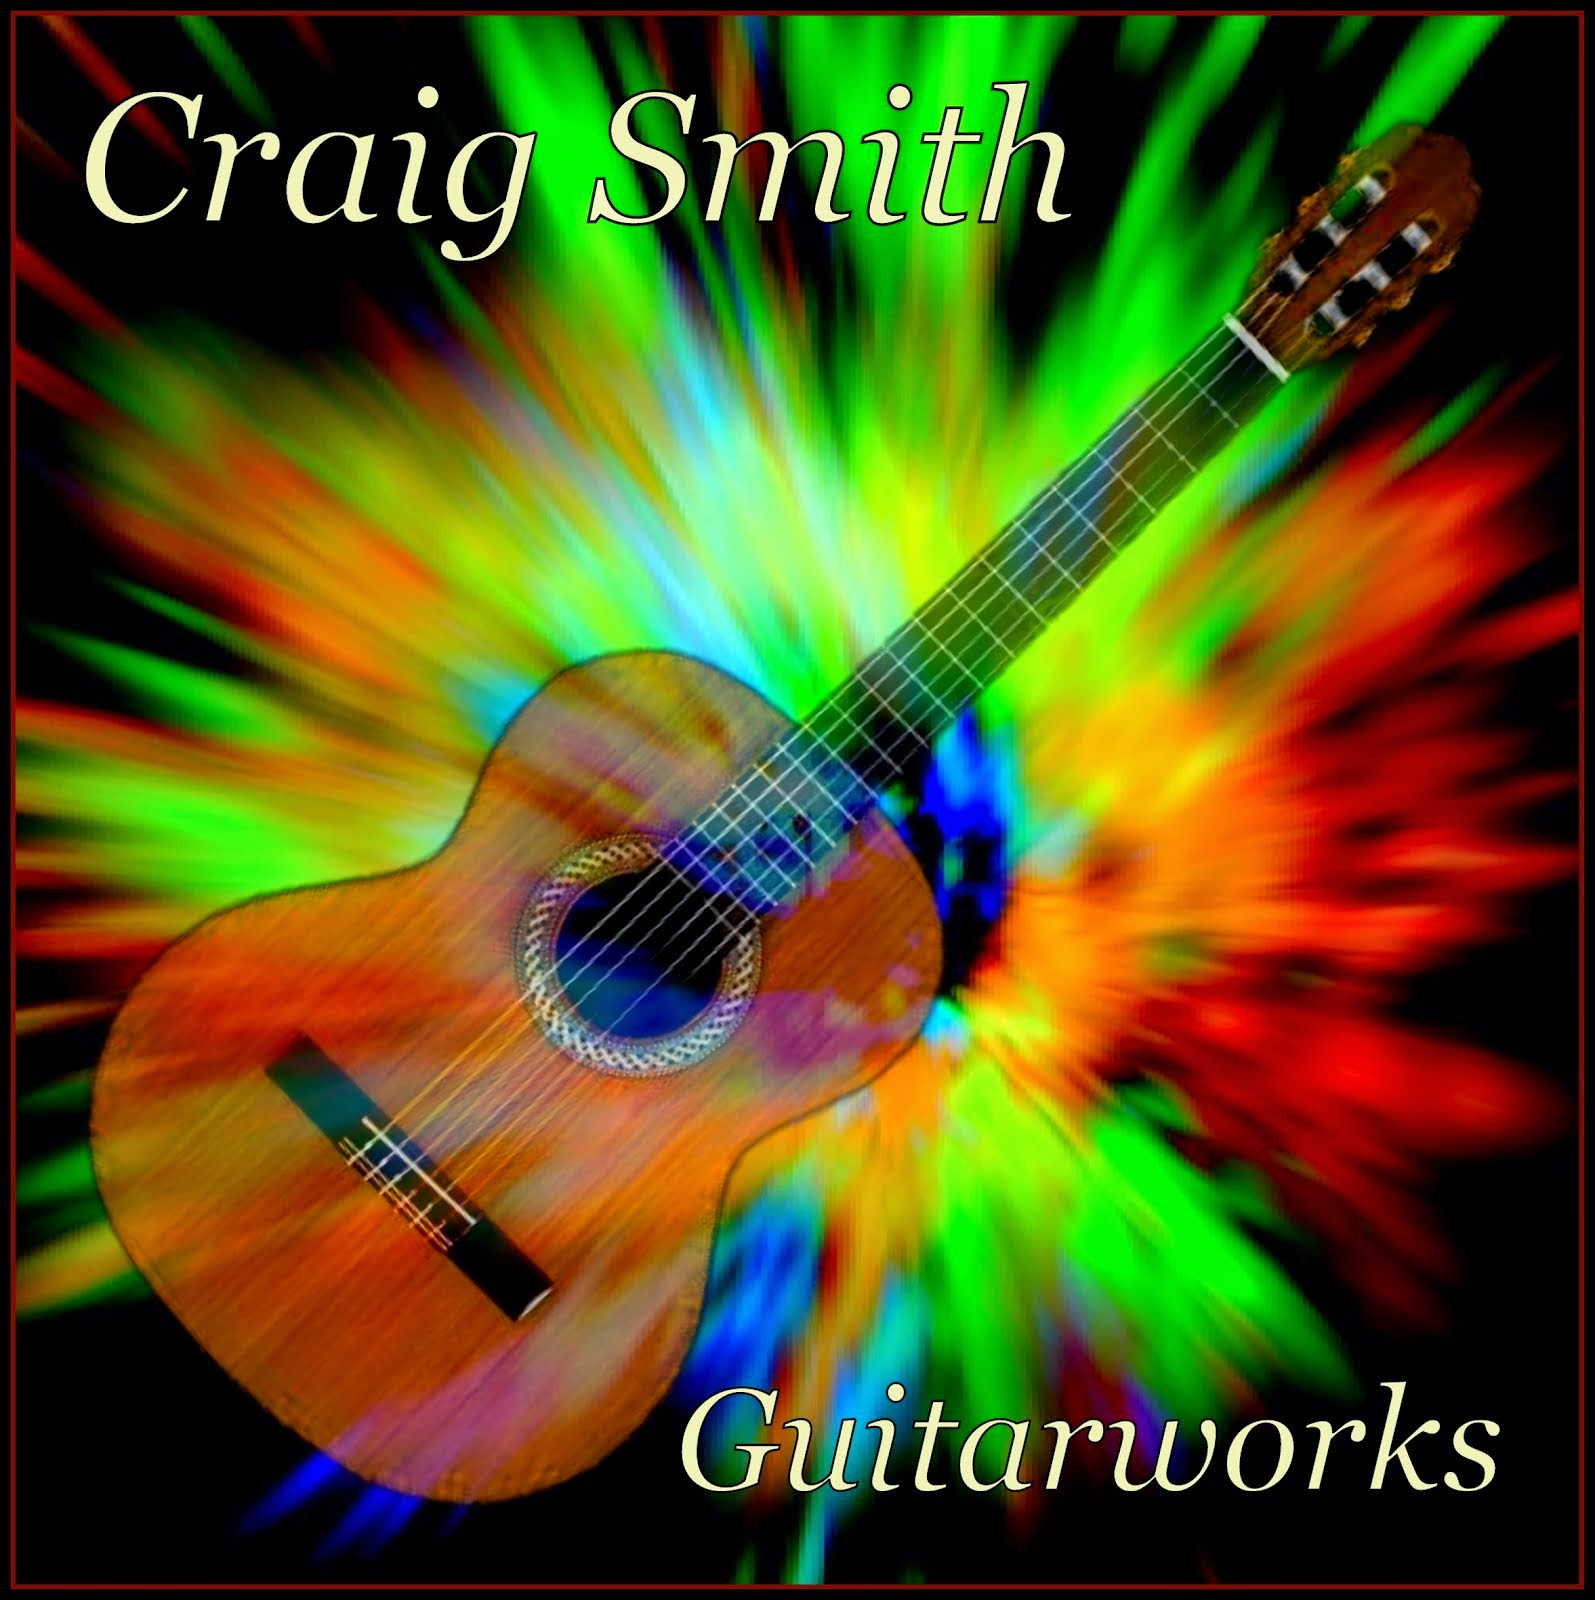 Craig Smith Guitarworks